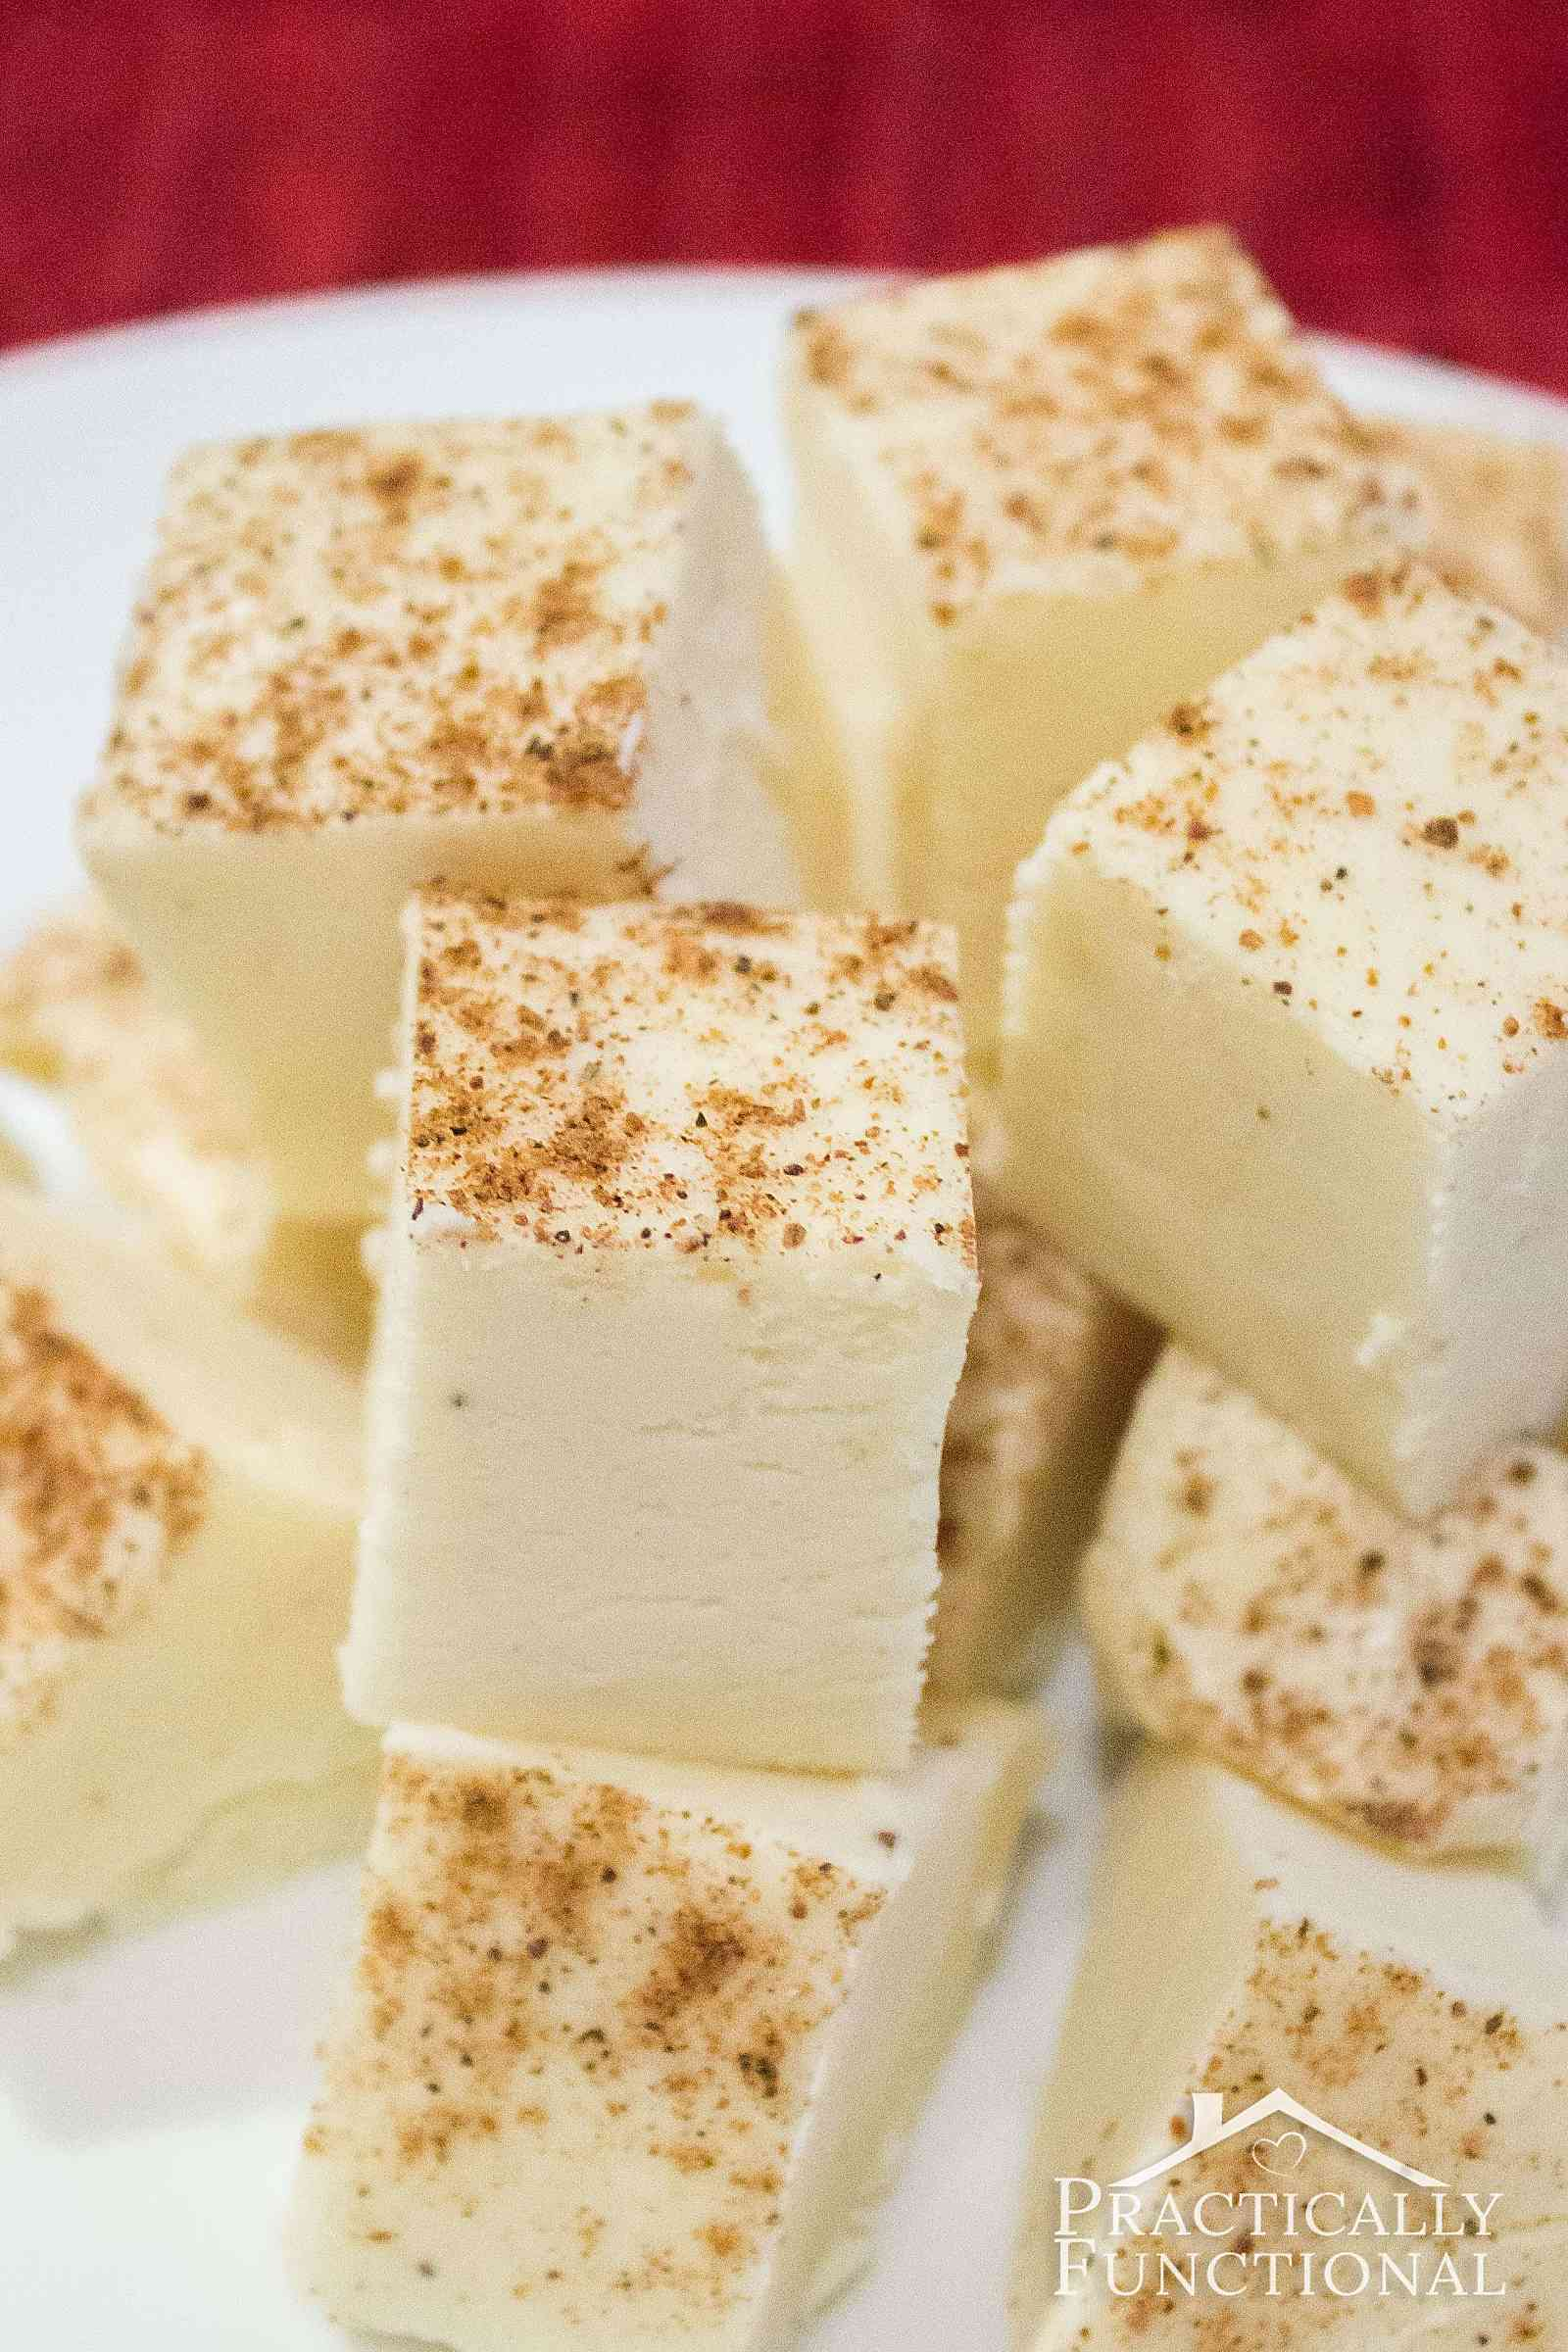 This homemade eggnog fudge recipe looks delicious! So easy to make, and great for holiday gifts!